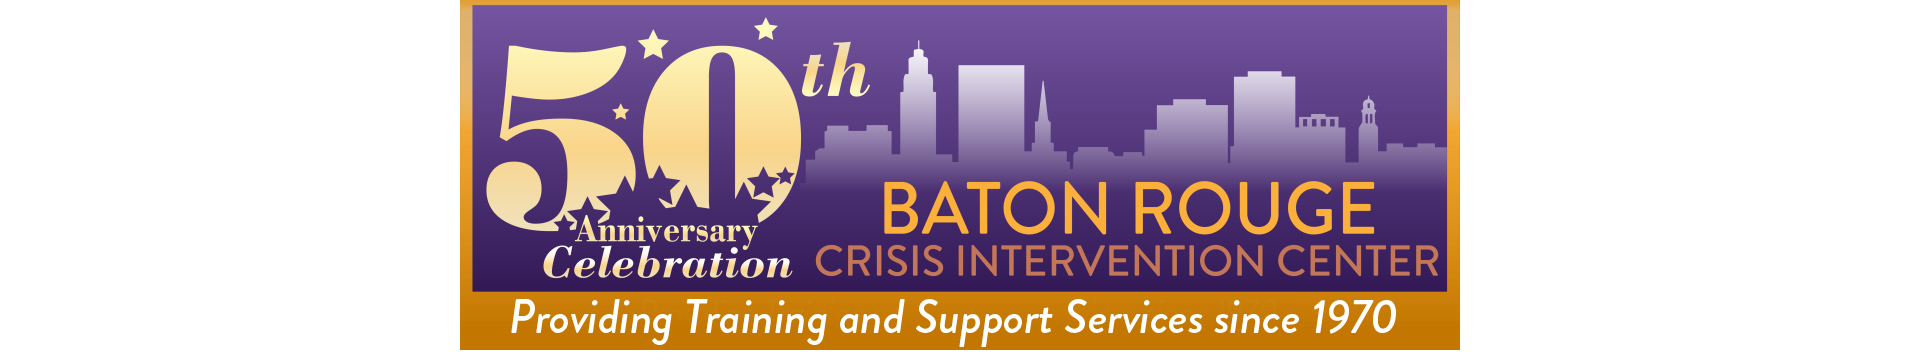 Baton Rouge Crisis Intervention Center